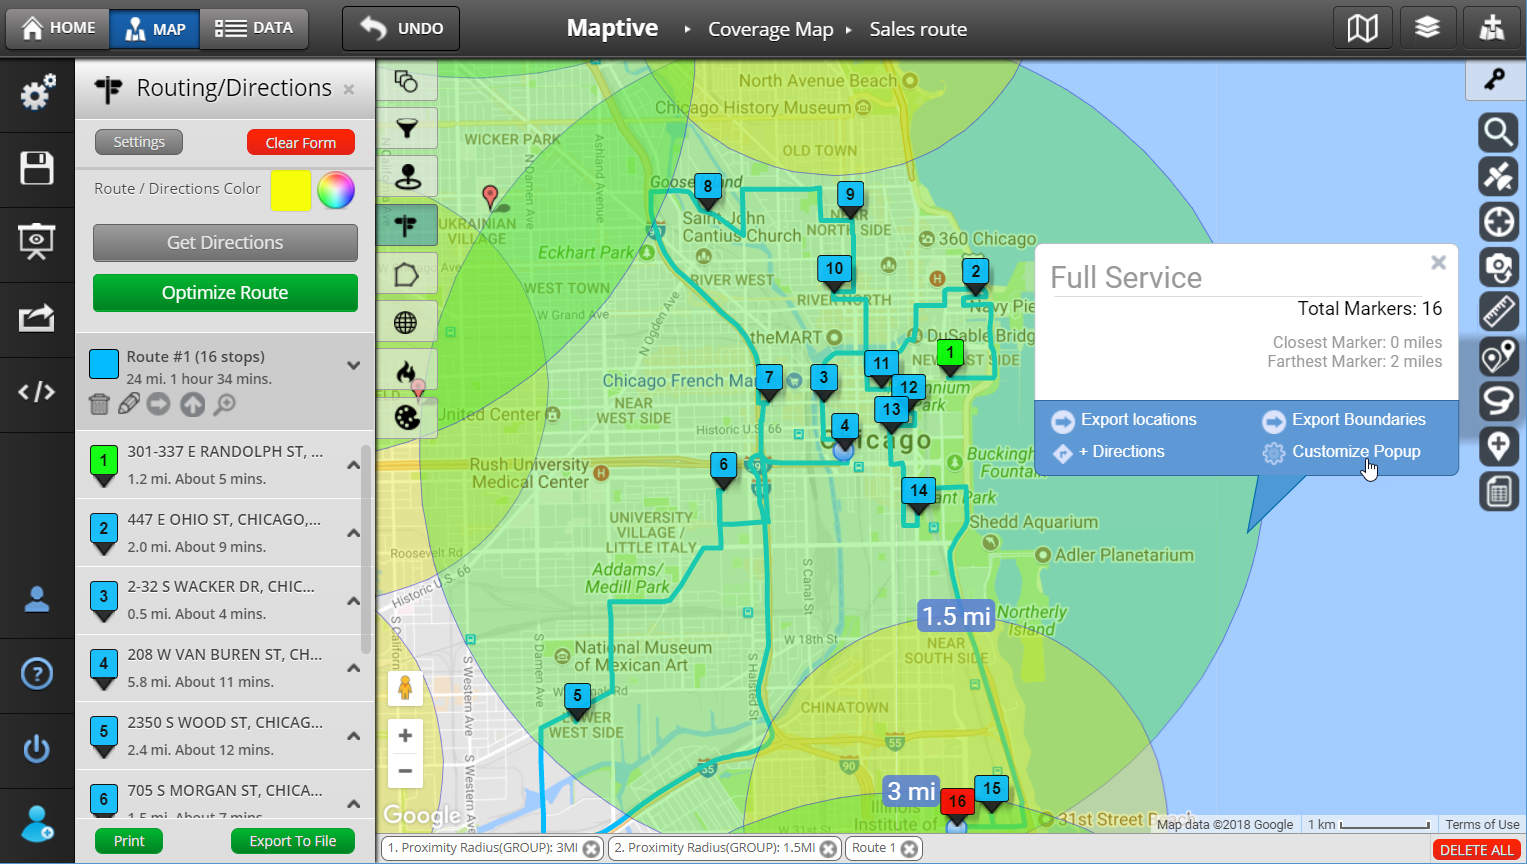 10 Mile Radius Map Radius Map and Proximity Tool   Maptive